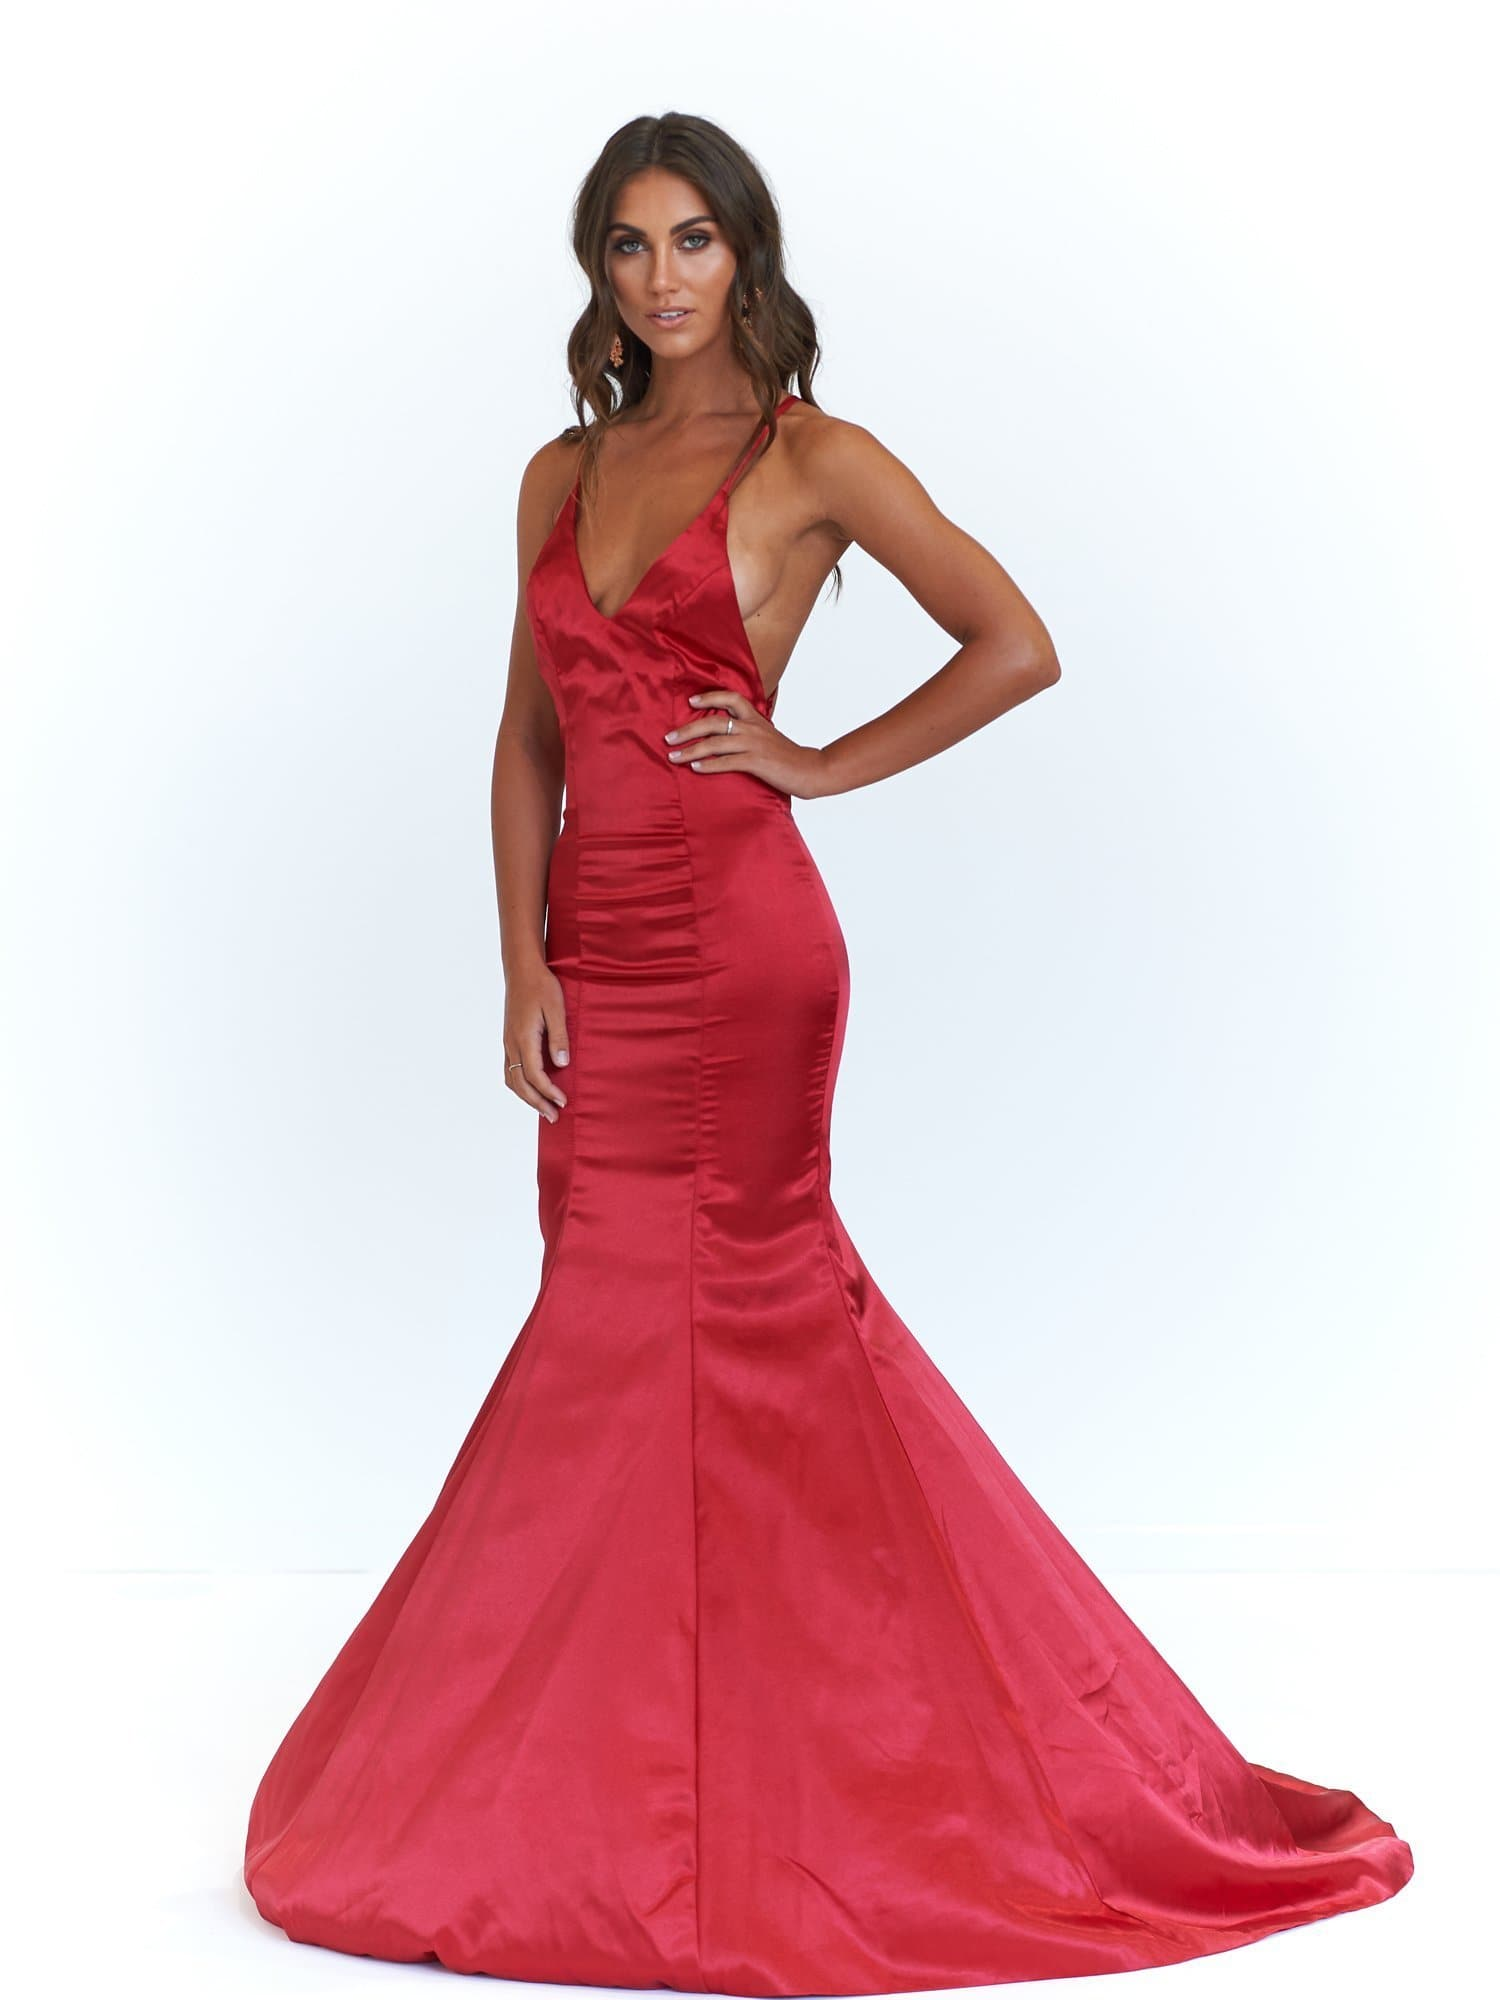 A&N Bahar -Deep Red Satin Gown with V Neck and Lace Up Back